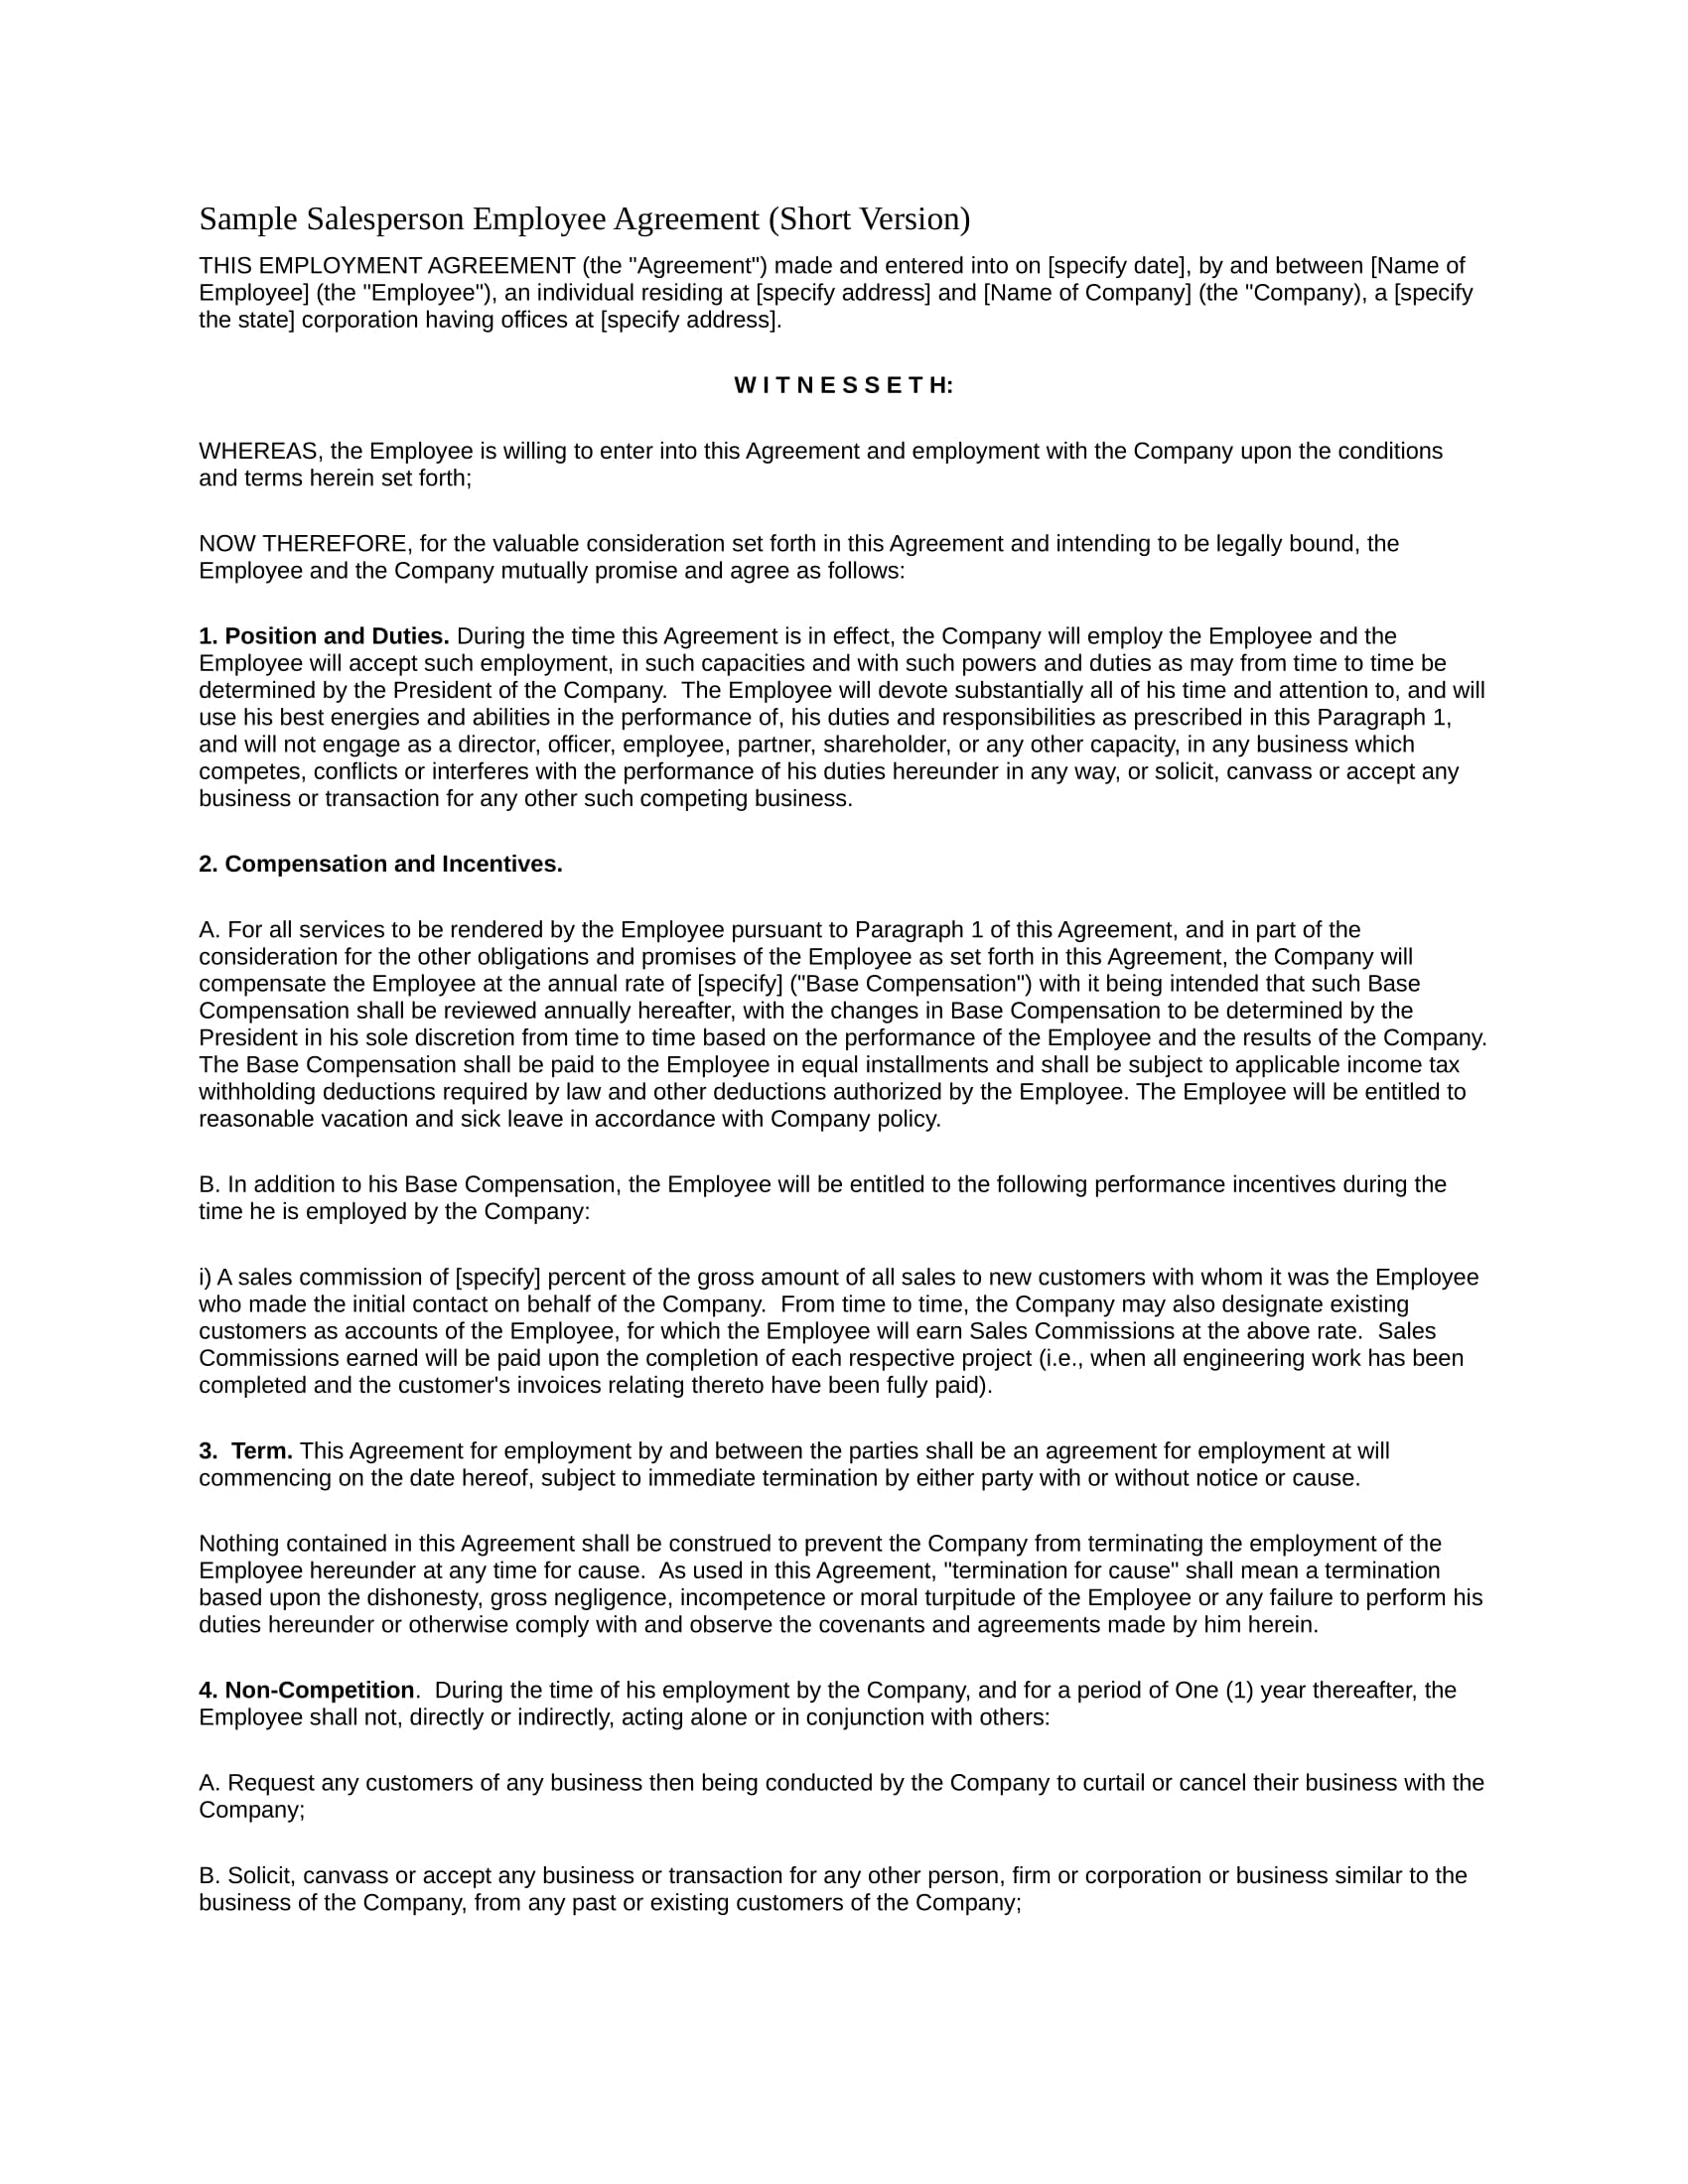 salesperson employee agreement contract form in doc 1